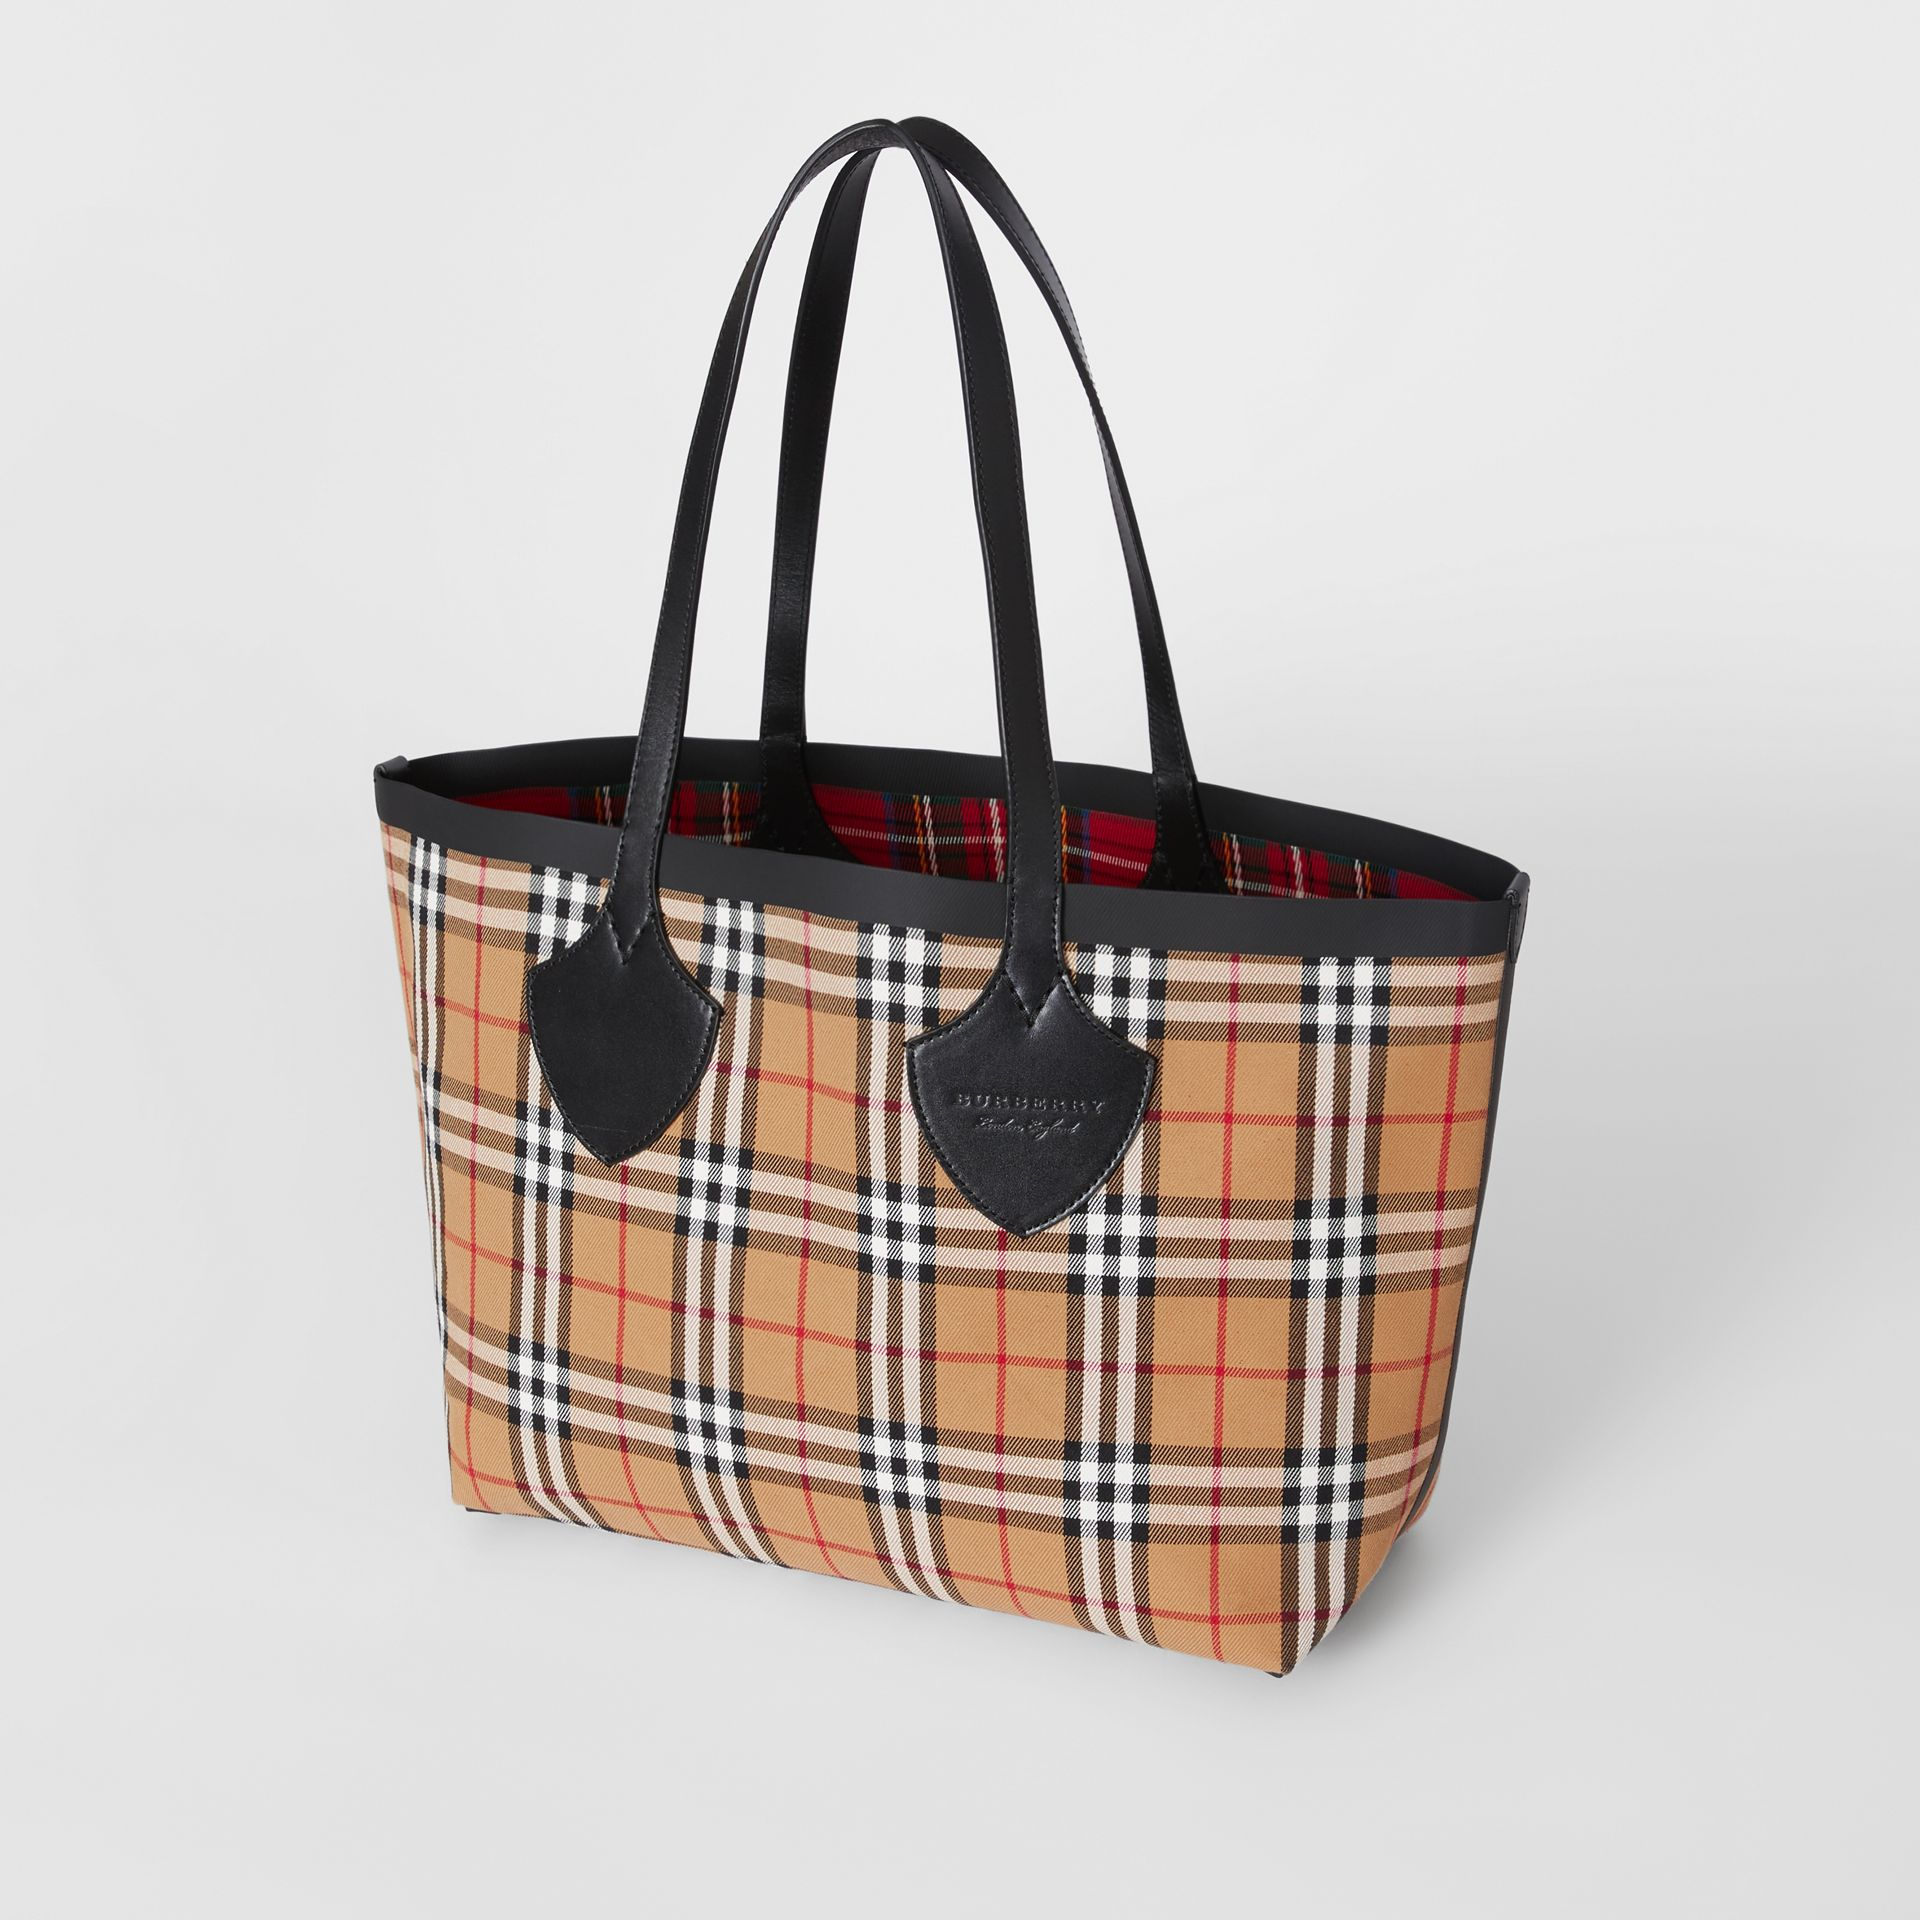 Sac tote The Giant moyen en Vintage check (Jaune Antique/rouge Vif) | Burberry Canada - photo de la galerie 4